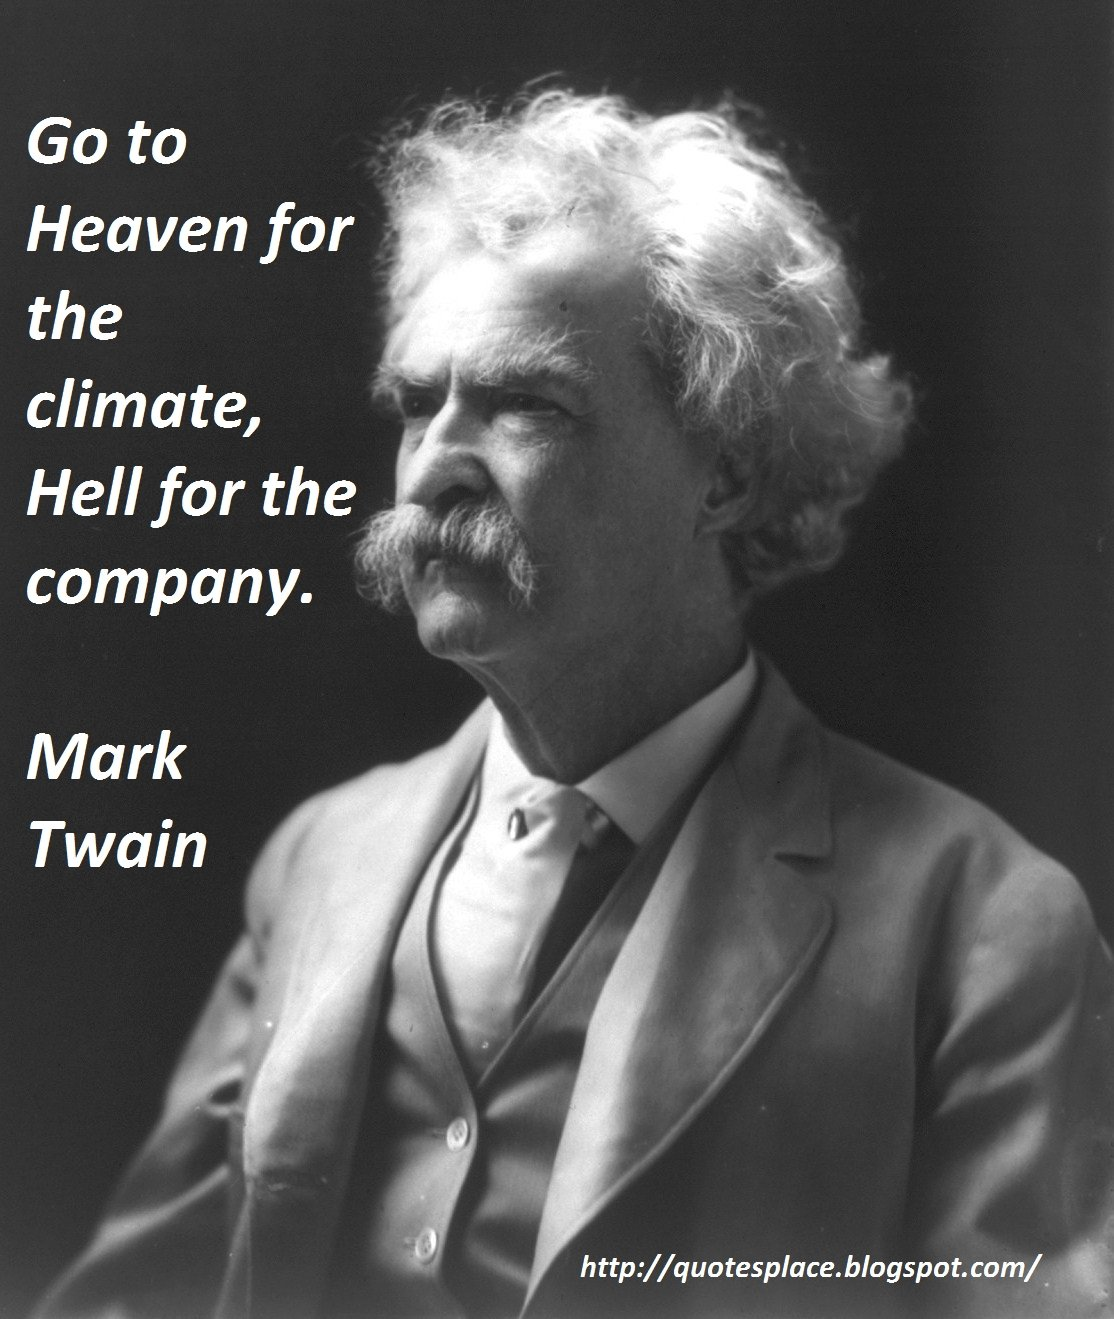 mark twain quotes life - photo #48